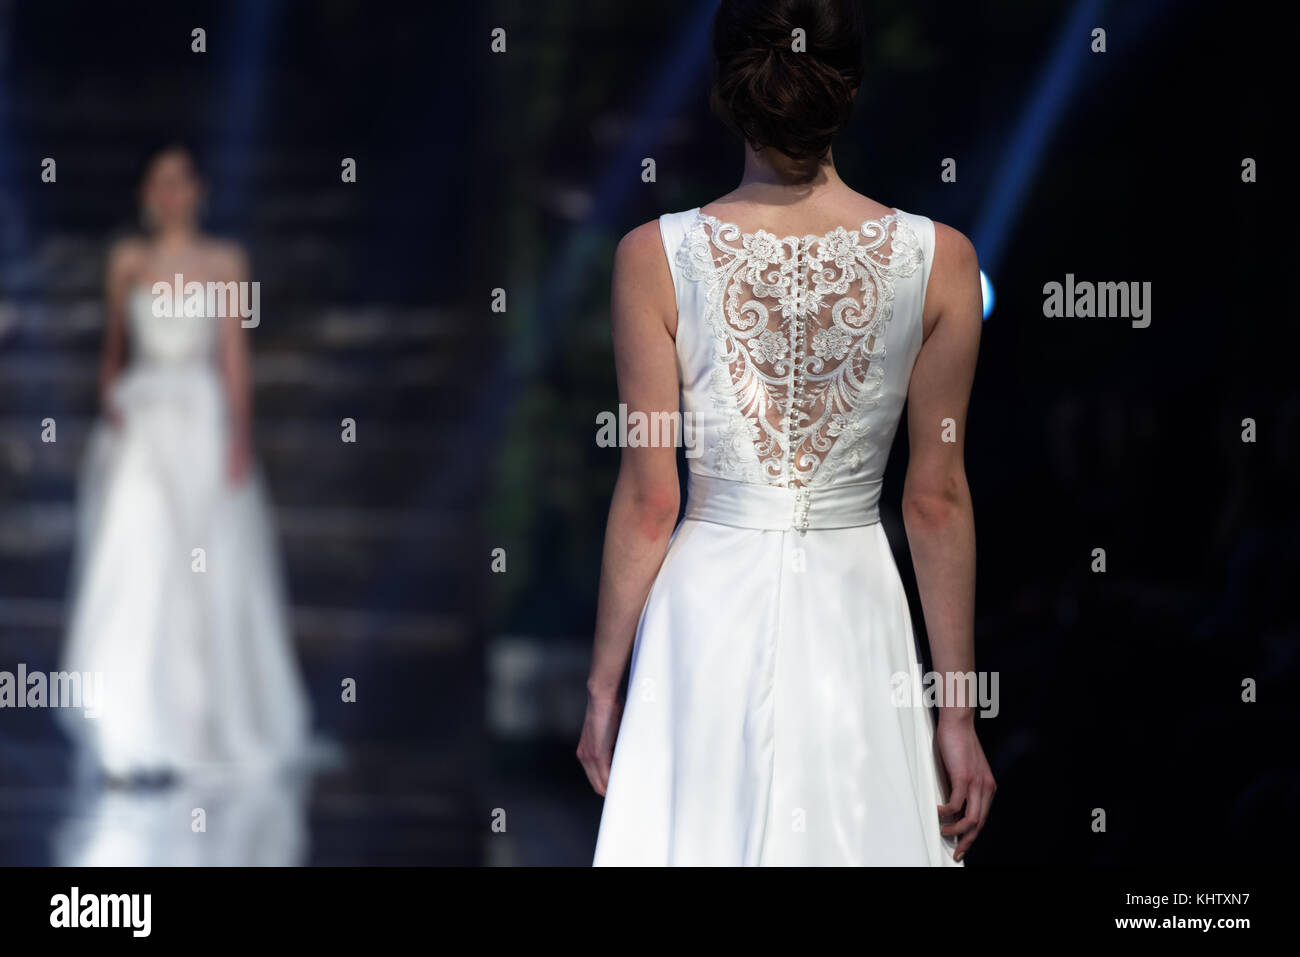 St. Petersburg, Russia - November 17, 2017: Wedding dress By Florentseva in the fashion parade of St. Petersburg - Stock Image